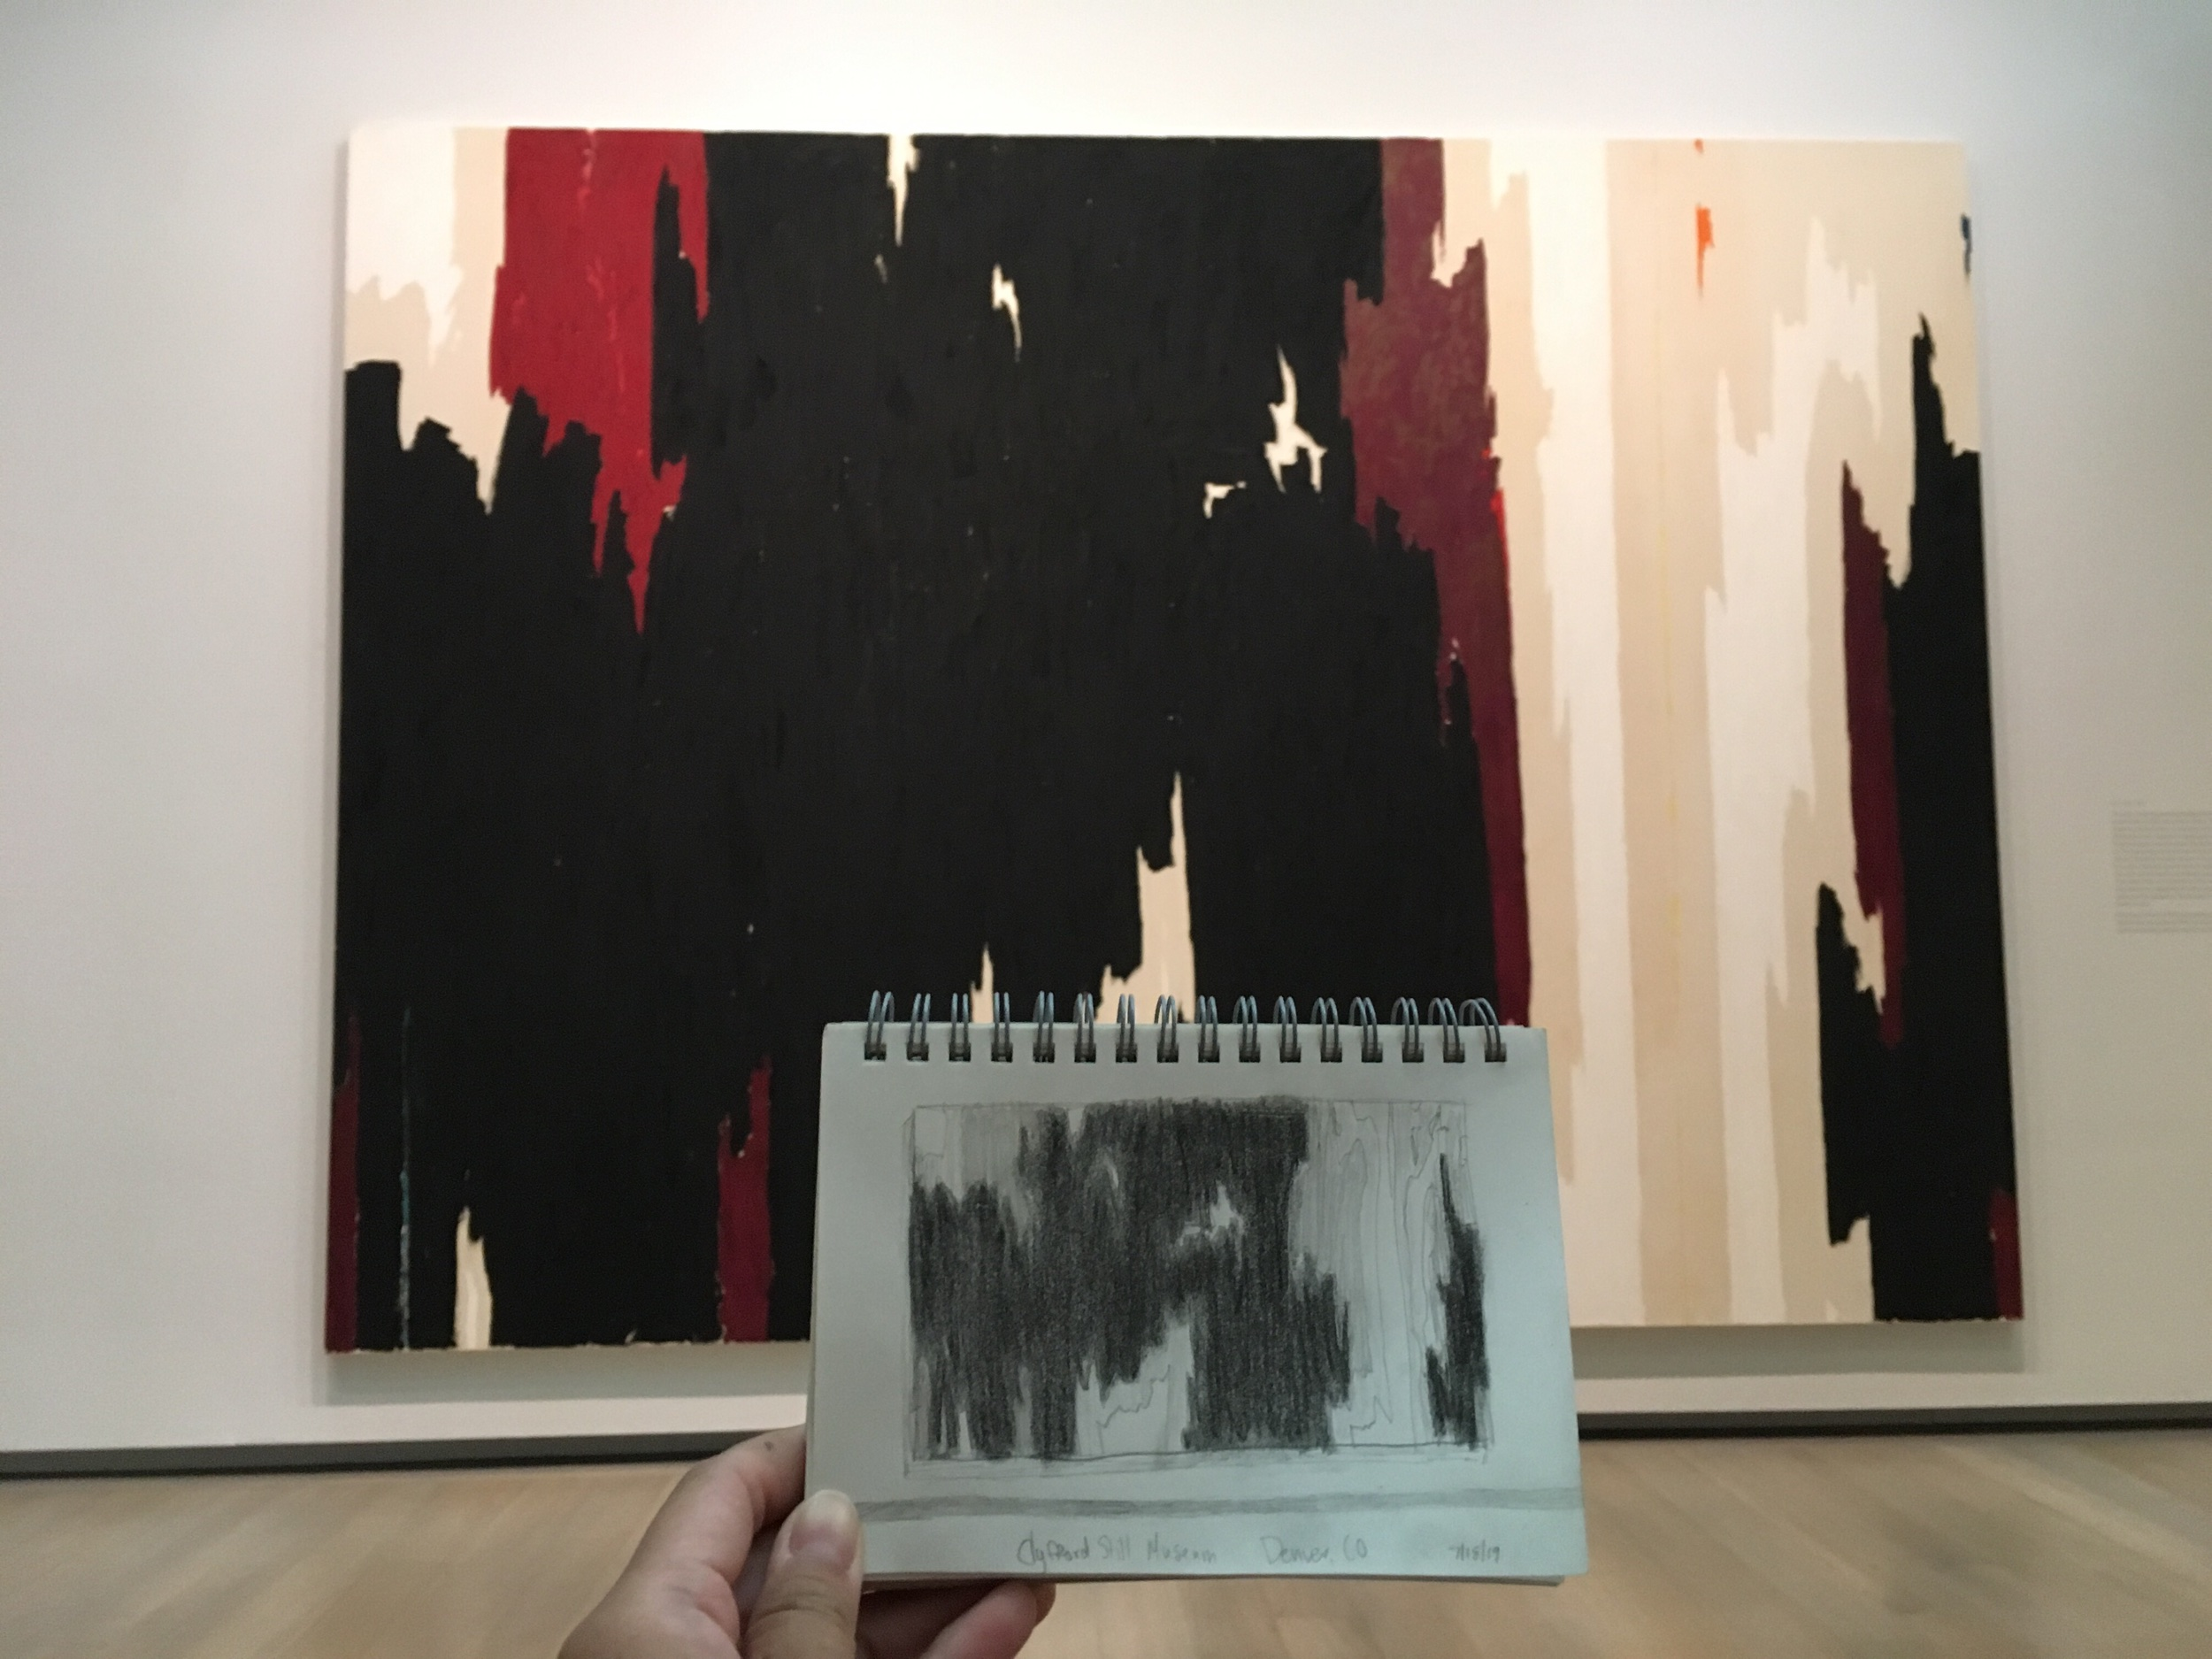 A little sketch of a painting at the Clyfford Still Museum.